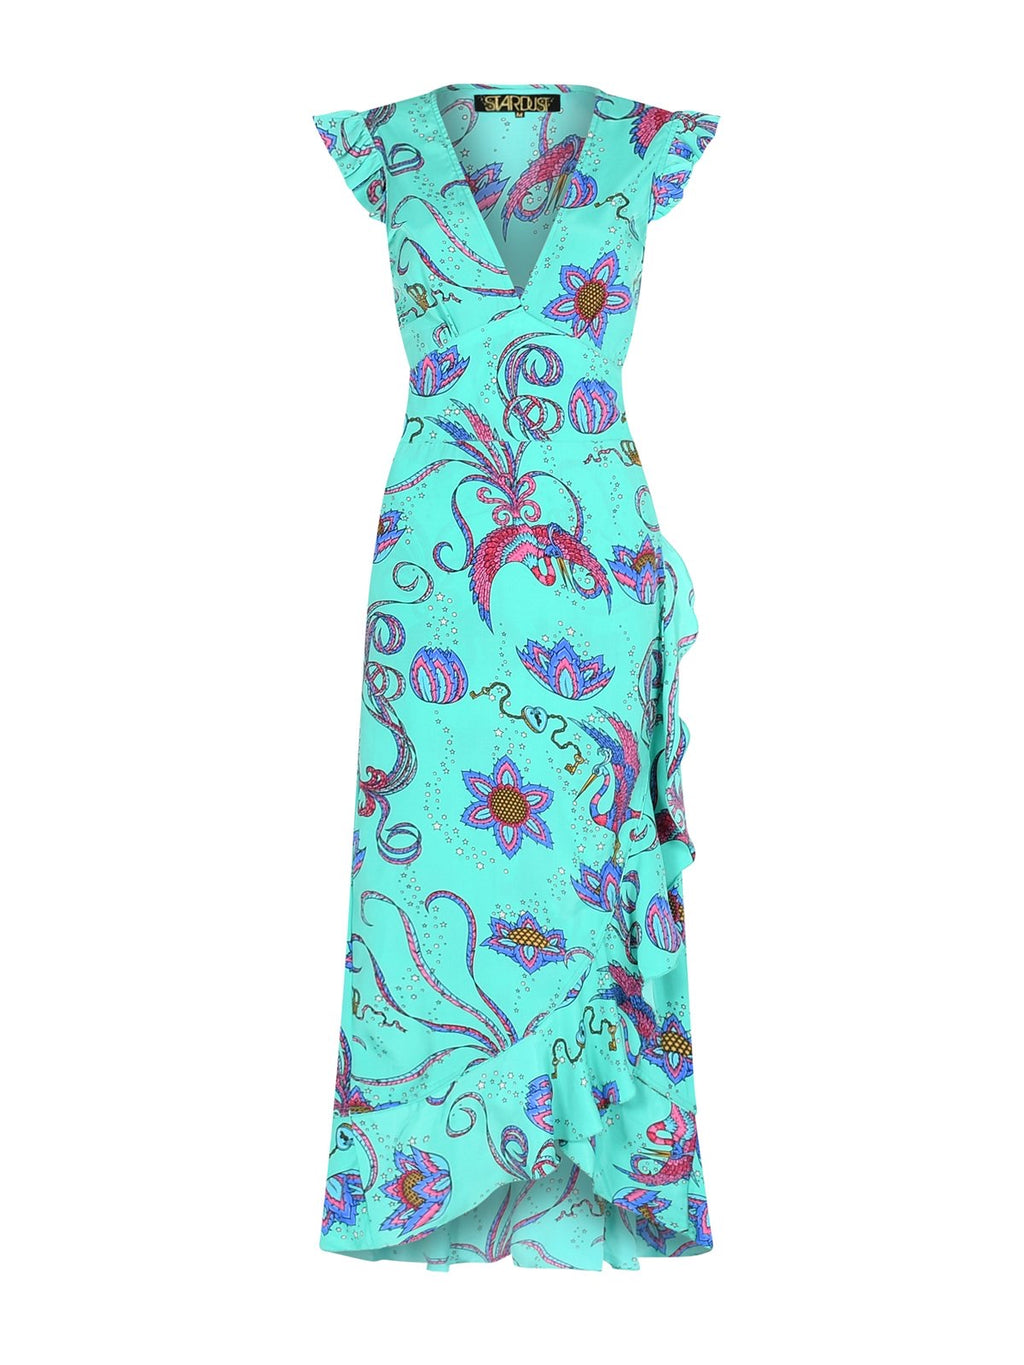 Stardust Sunflower Bird Dress - Emerald